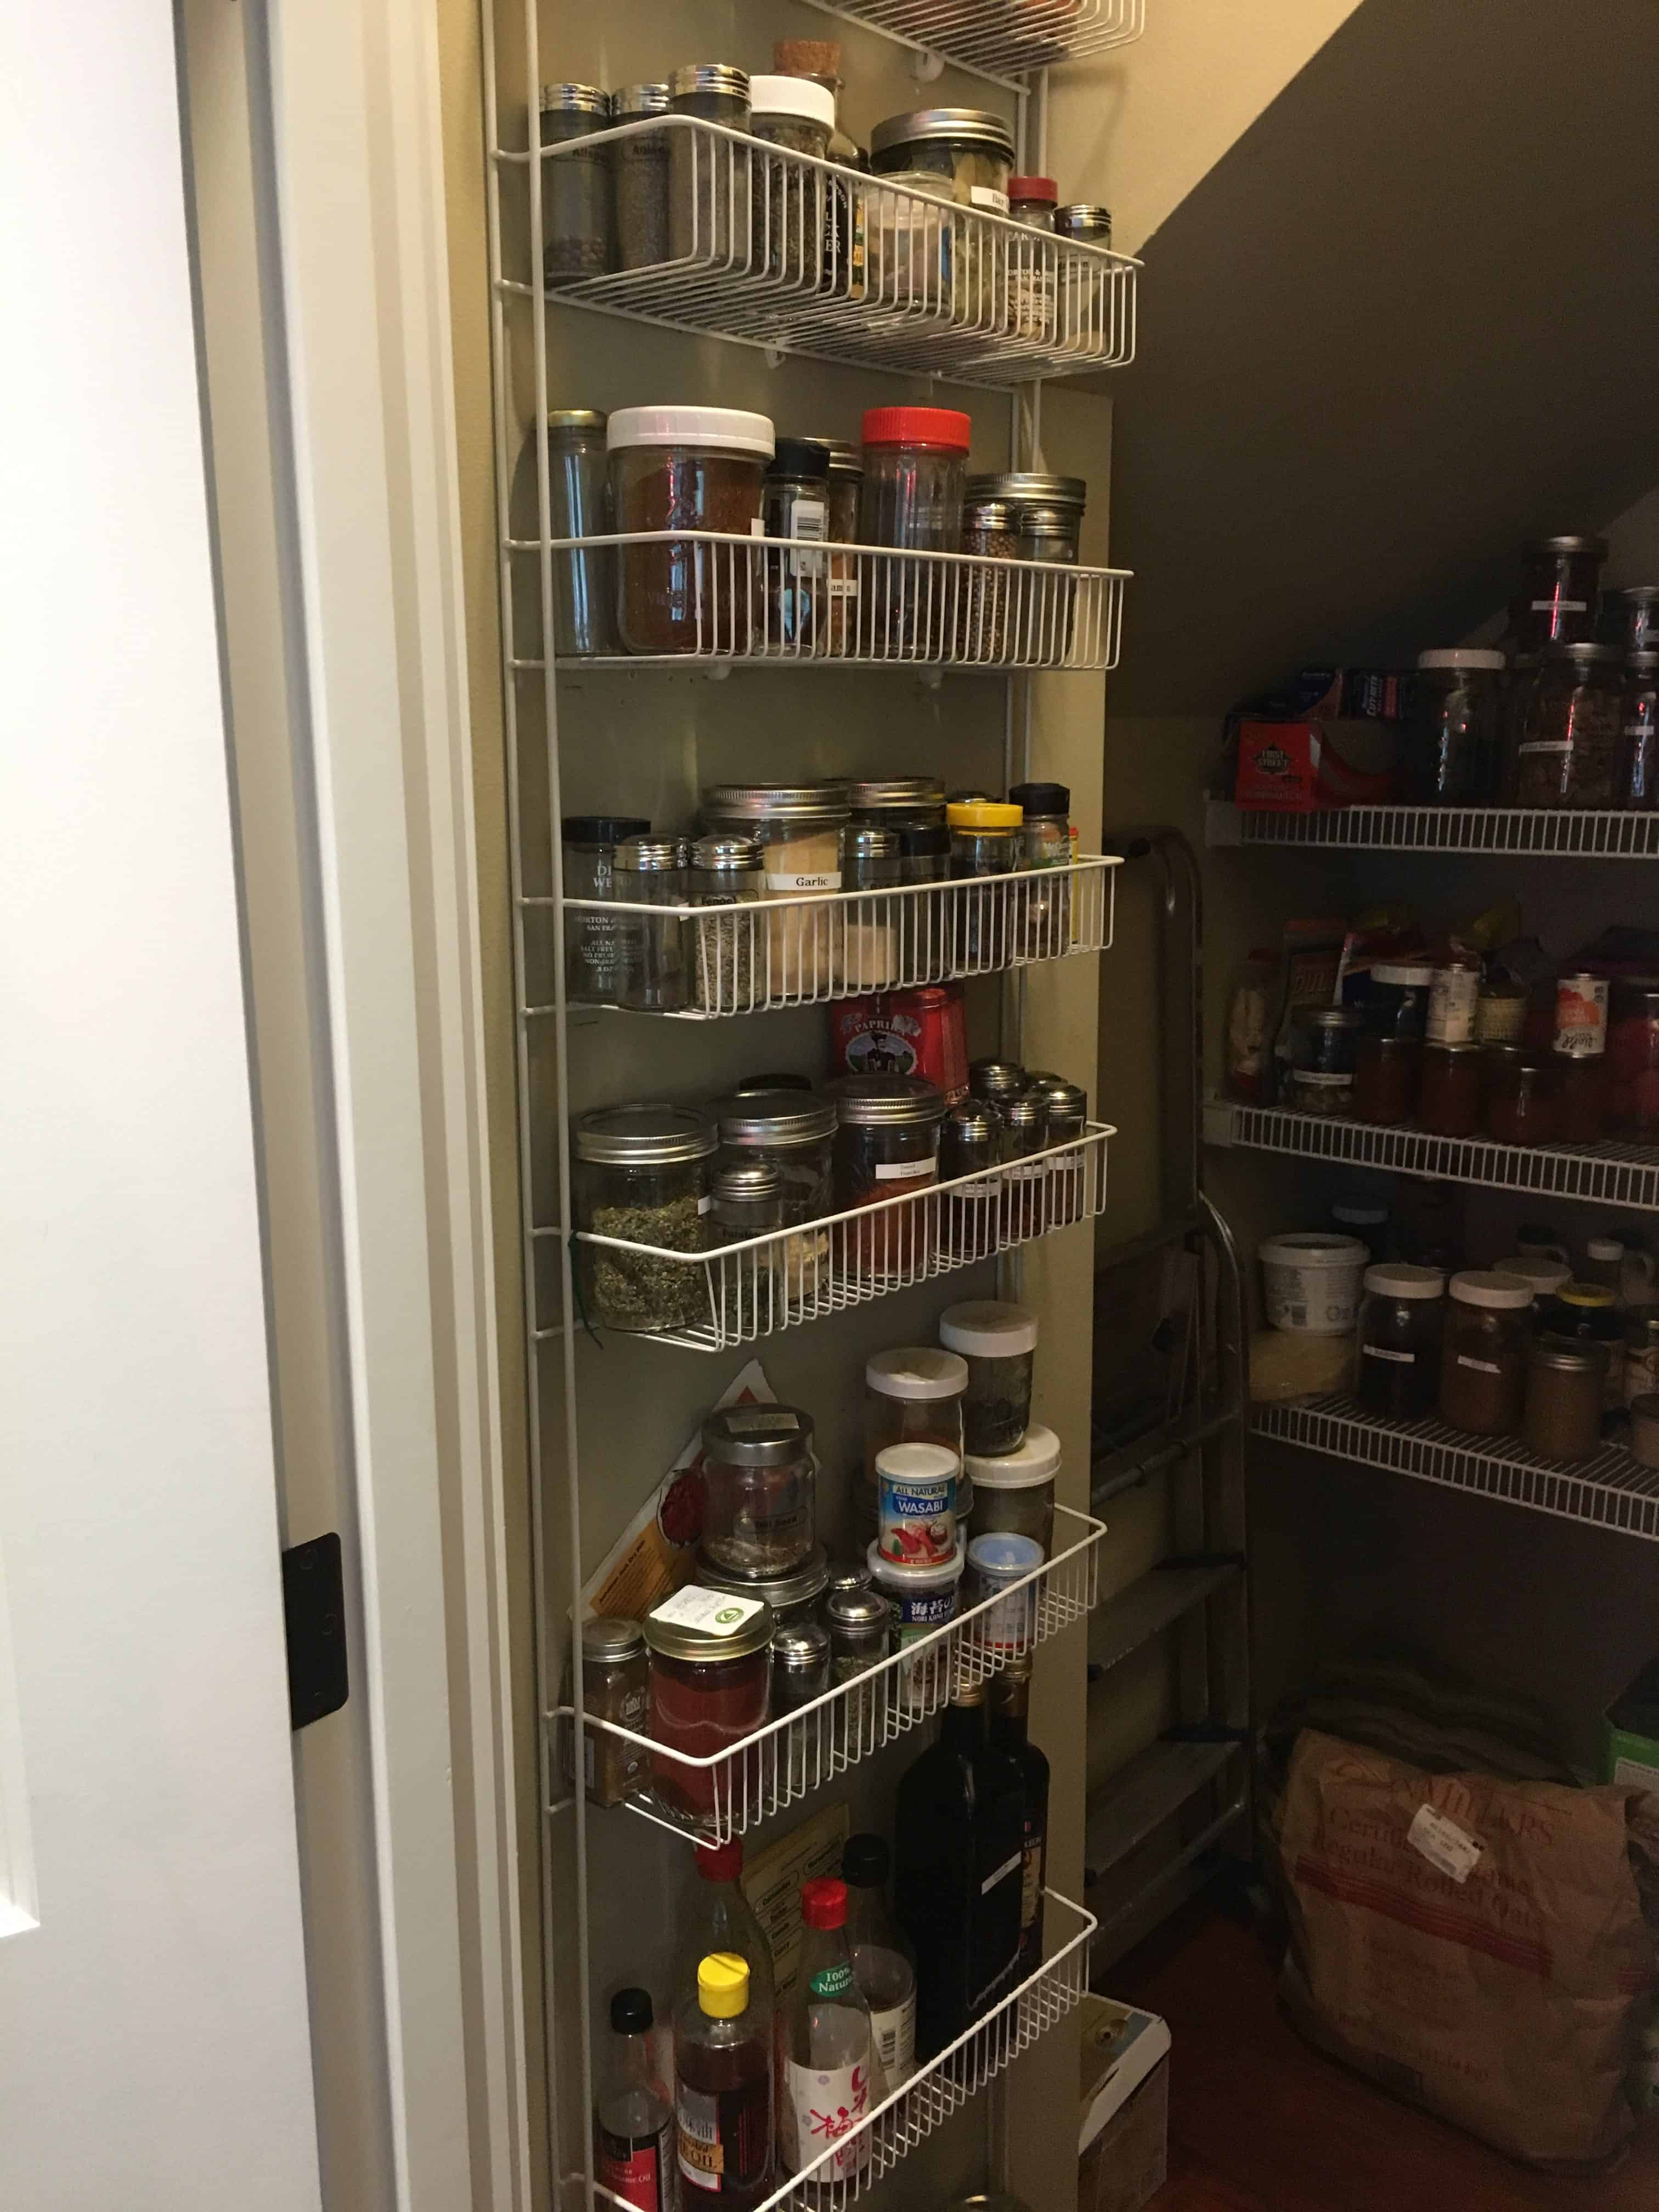 Walk-in pantry with shelves of glass storage jars full of vegan (whole food plant-based) foods https://trimazing.com